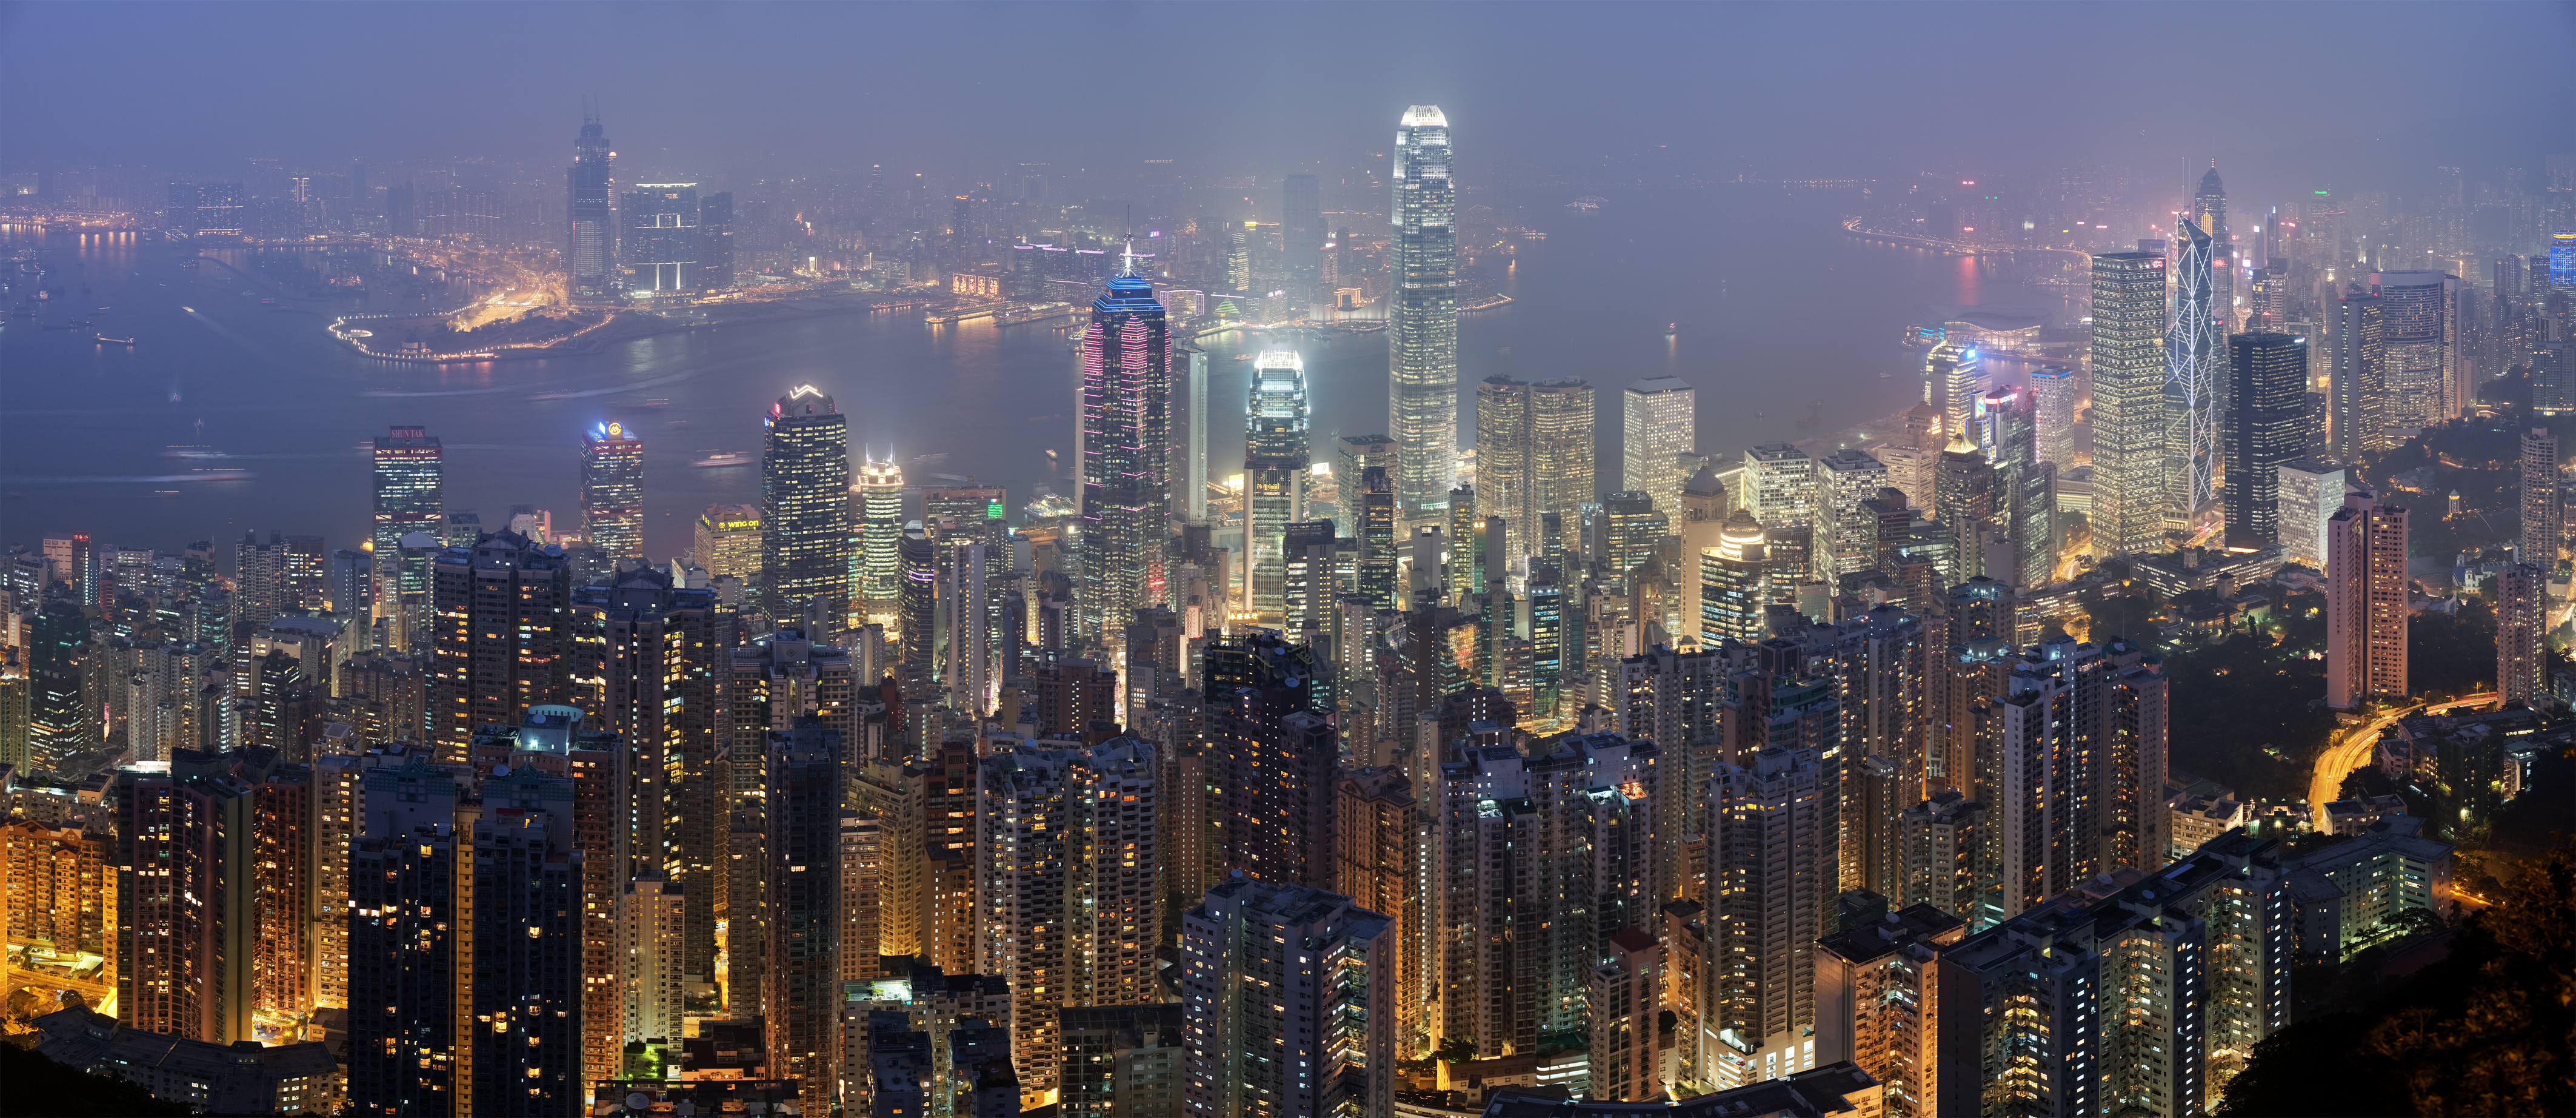 Hong Kong - Wikipedia, the free encyclopedia HONG KONG